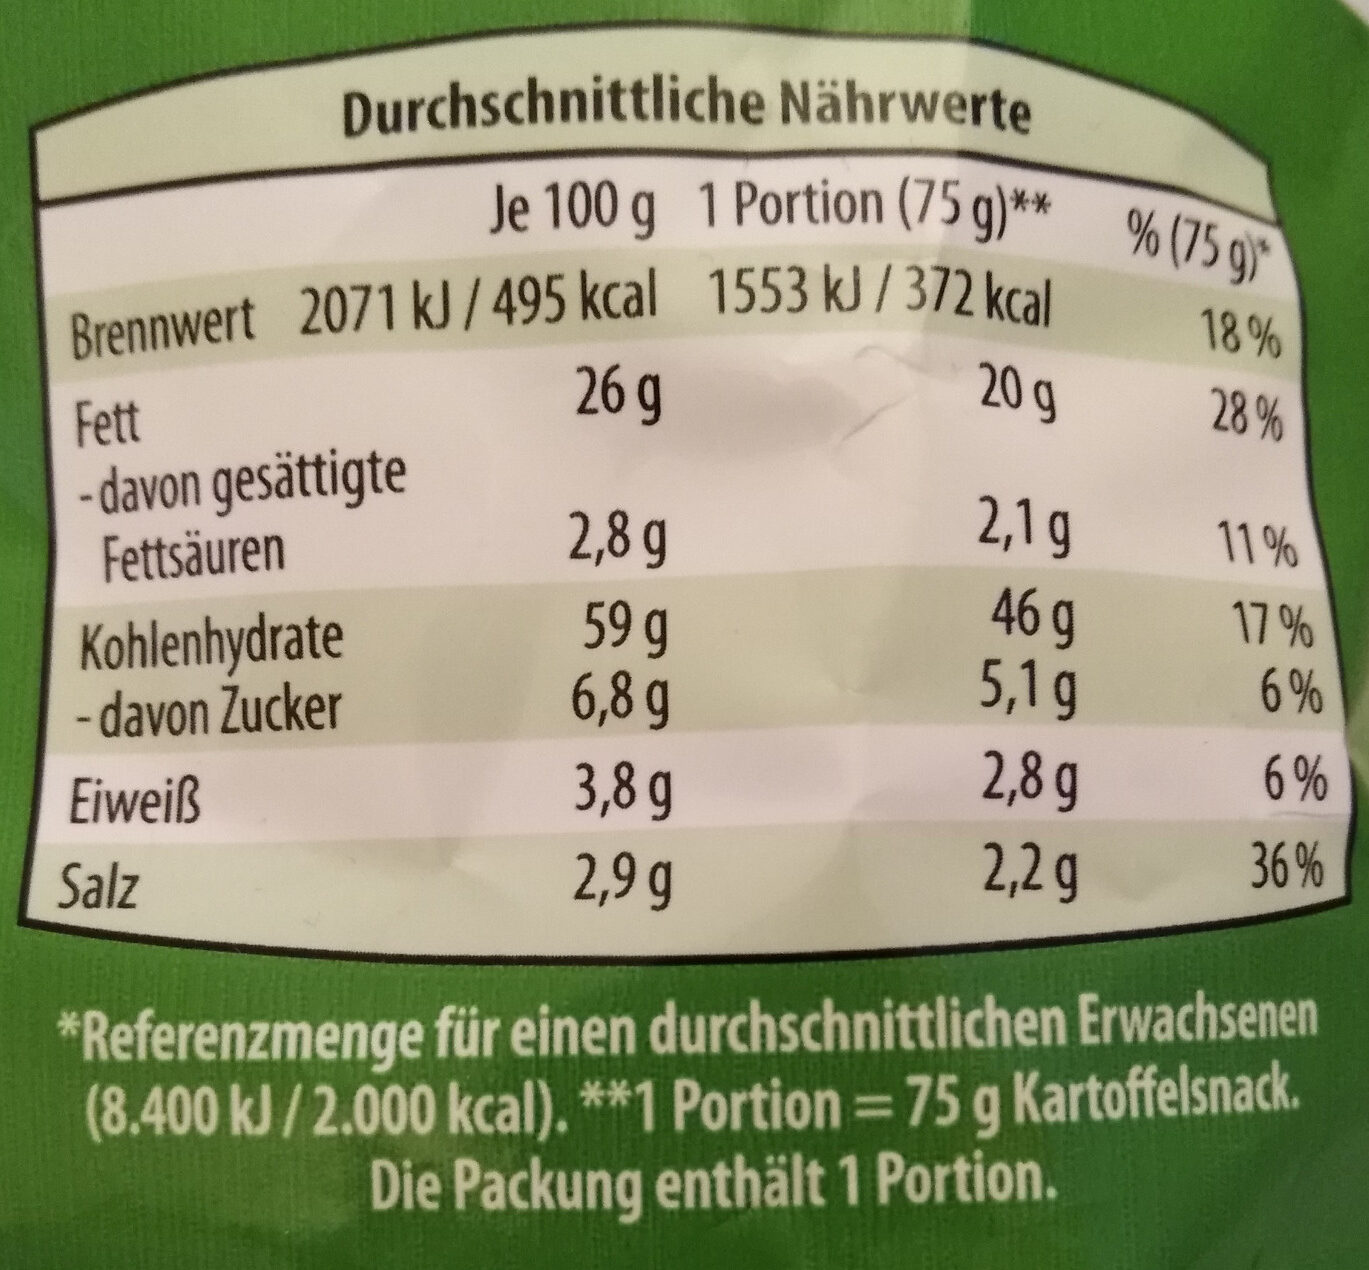 Snack Ringe Sour Cream & Onion - Nutrition facts - de